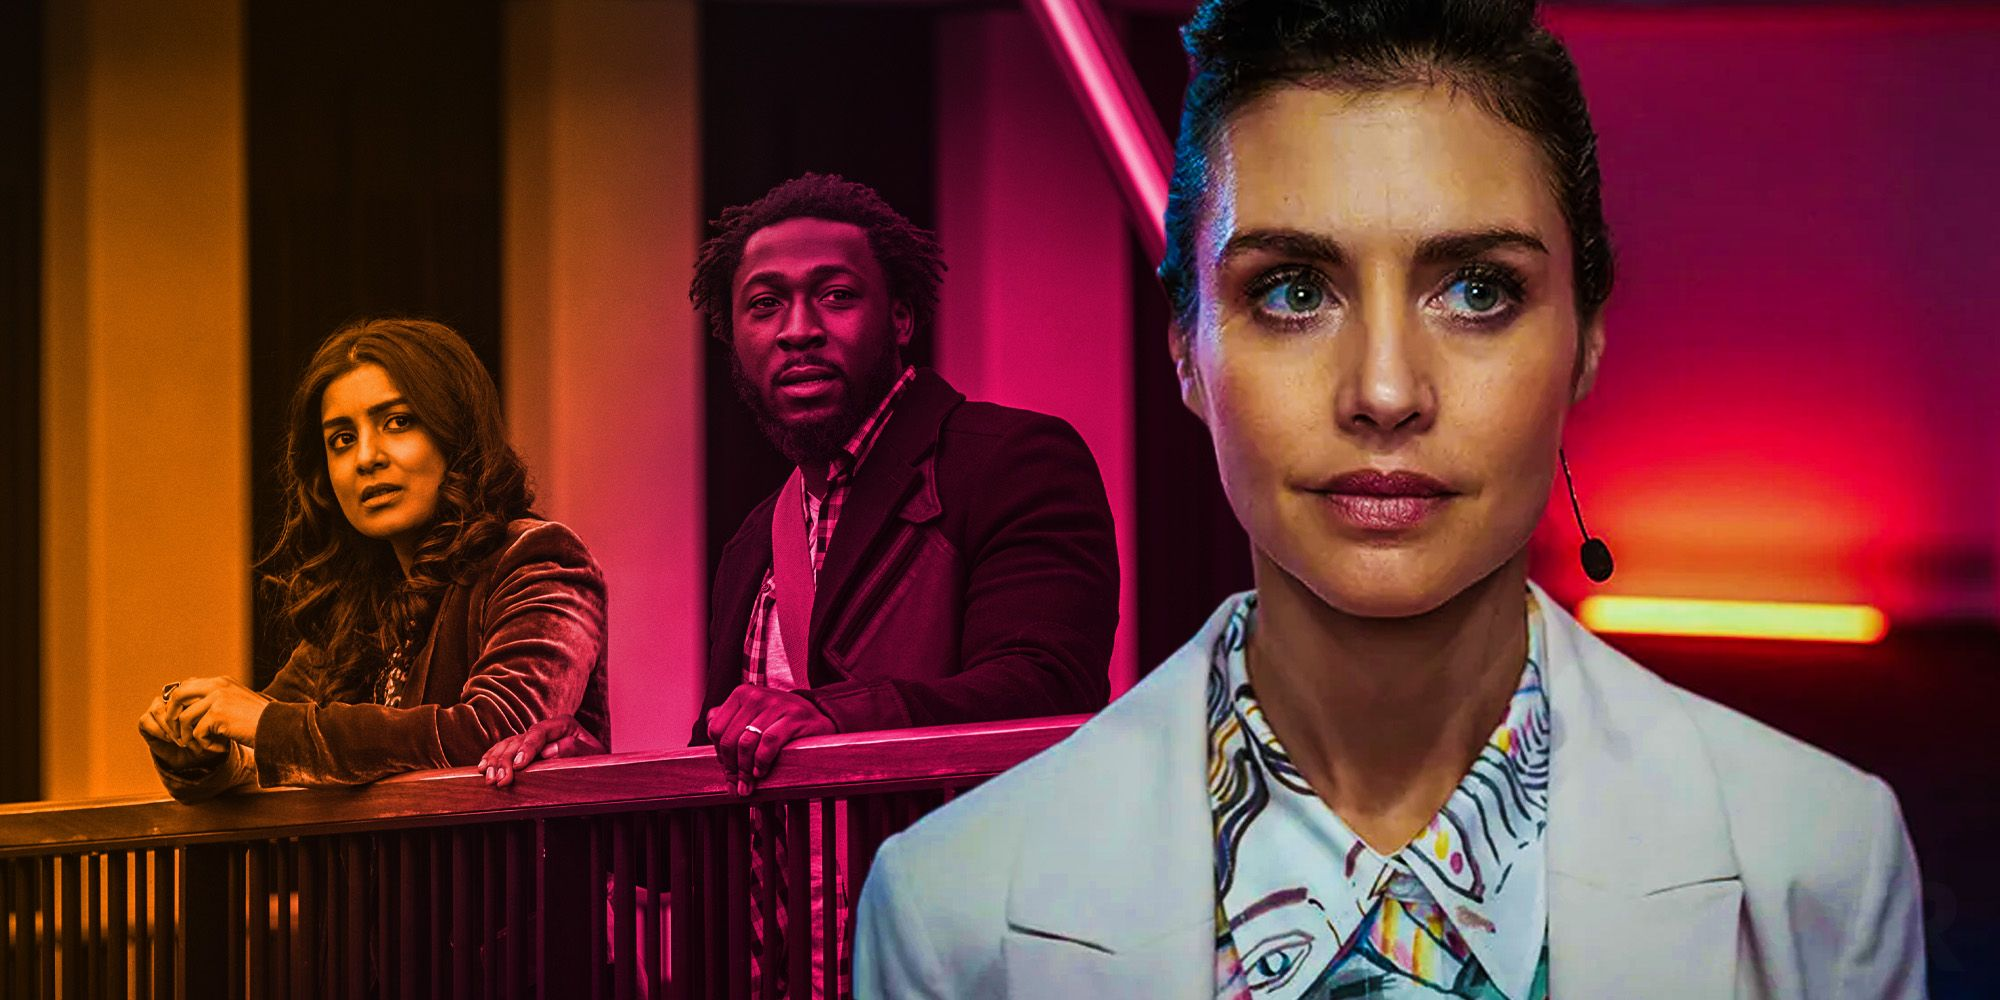 The One season 2: Release date, Cast and What to expect